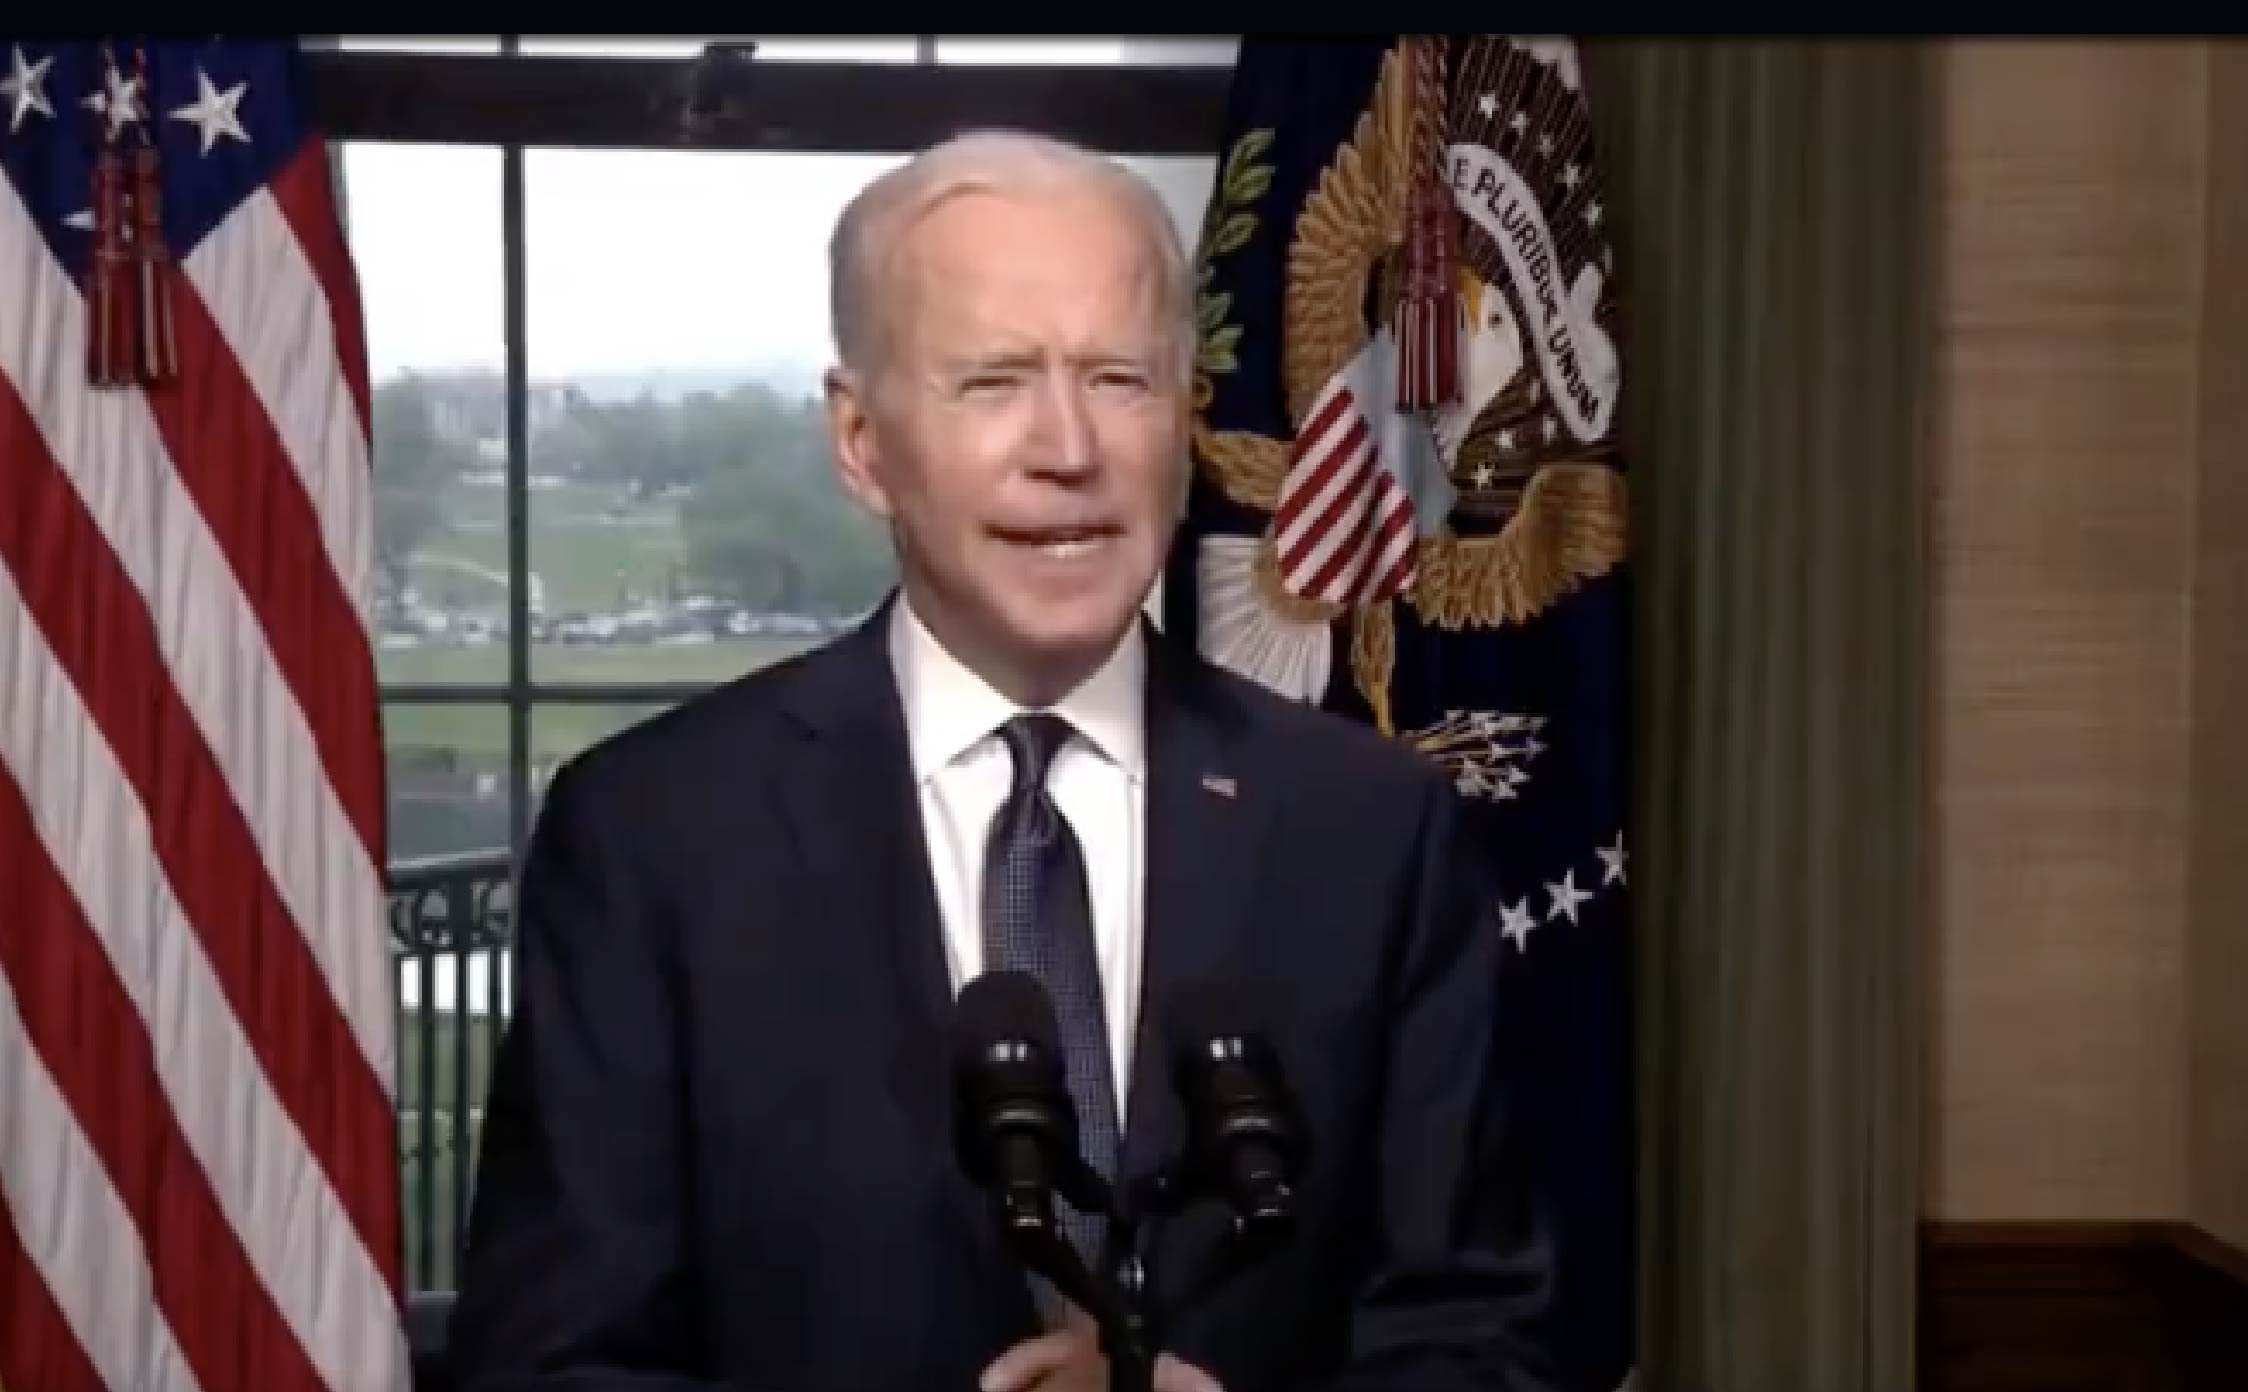 [VIDEO] Biden Forgets Who He is While Discussing Osama Bin Laden On Live TV